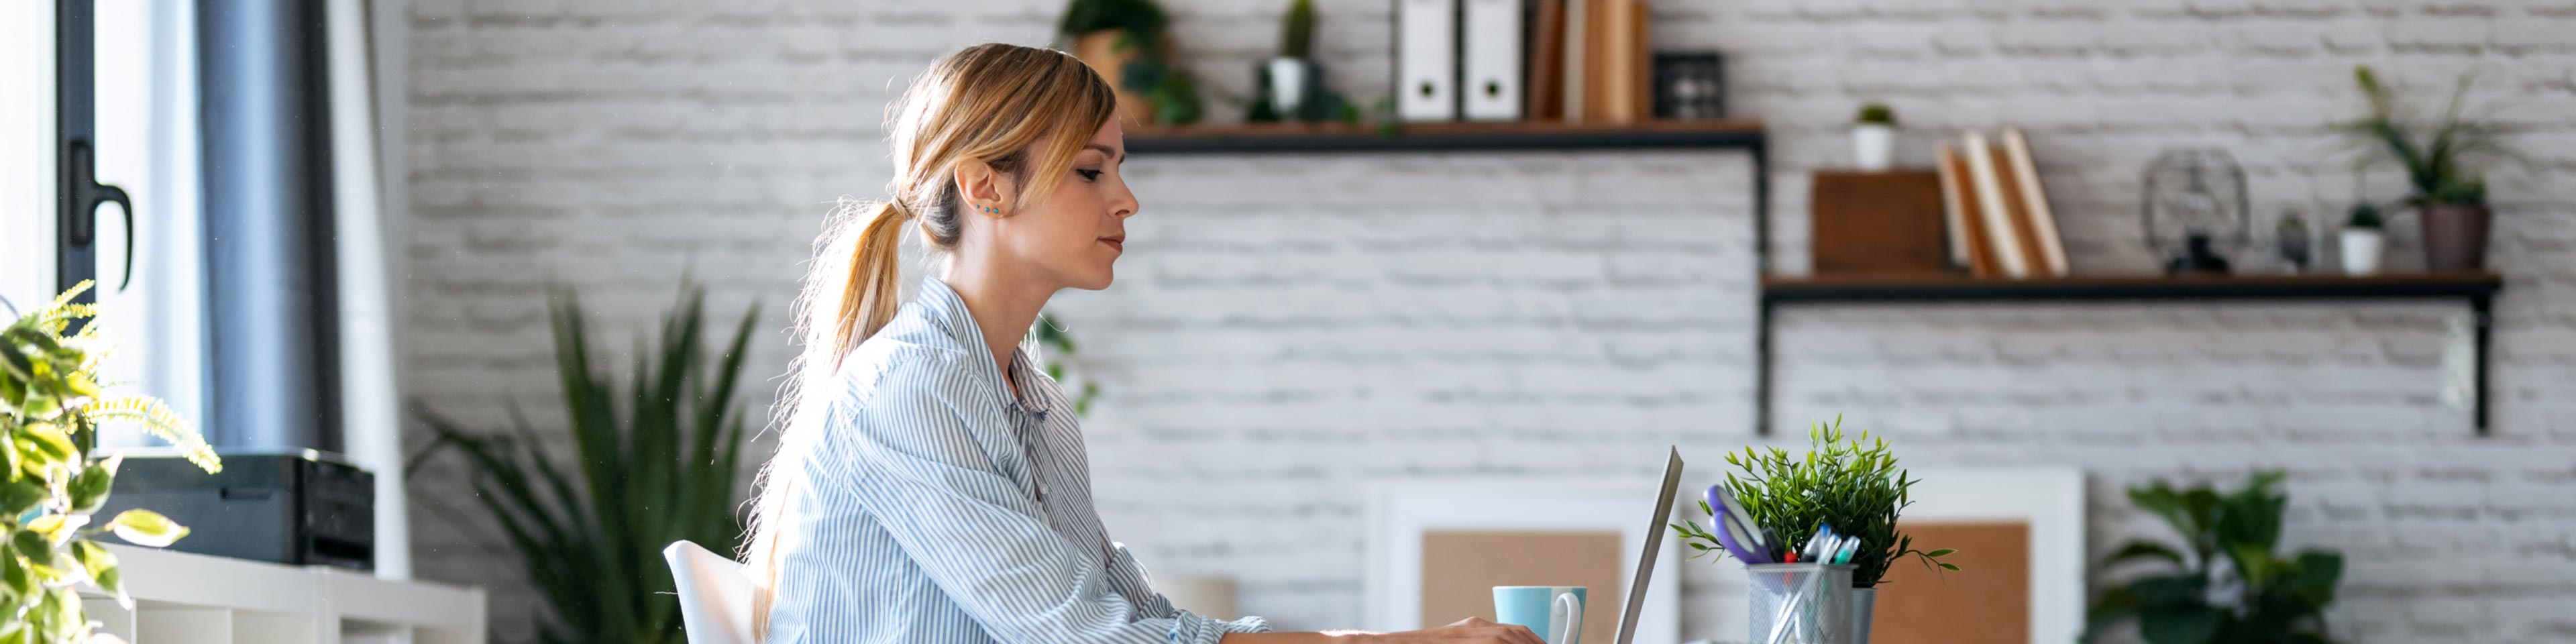 woman researching employee turnover issues